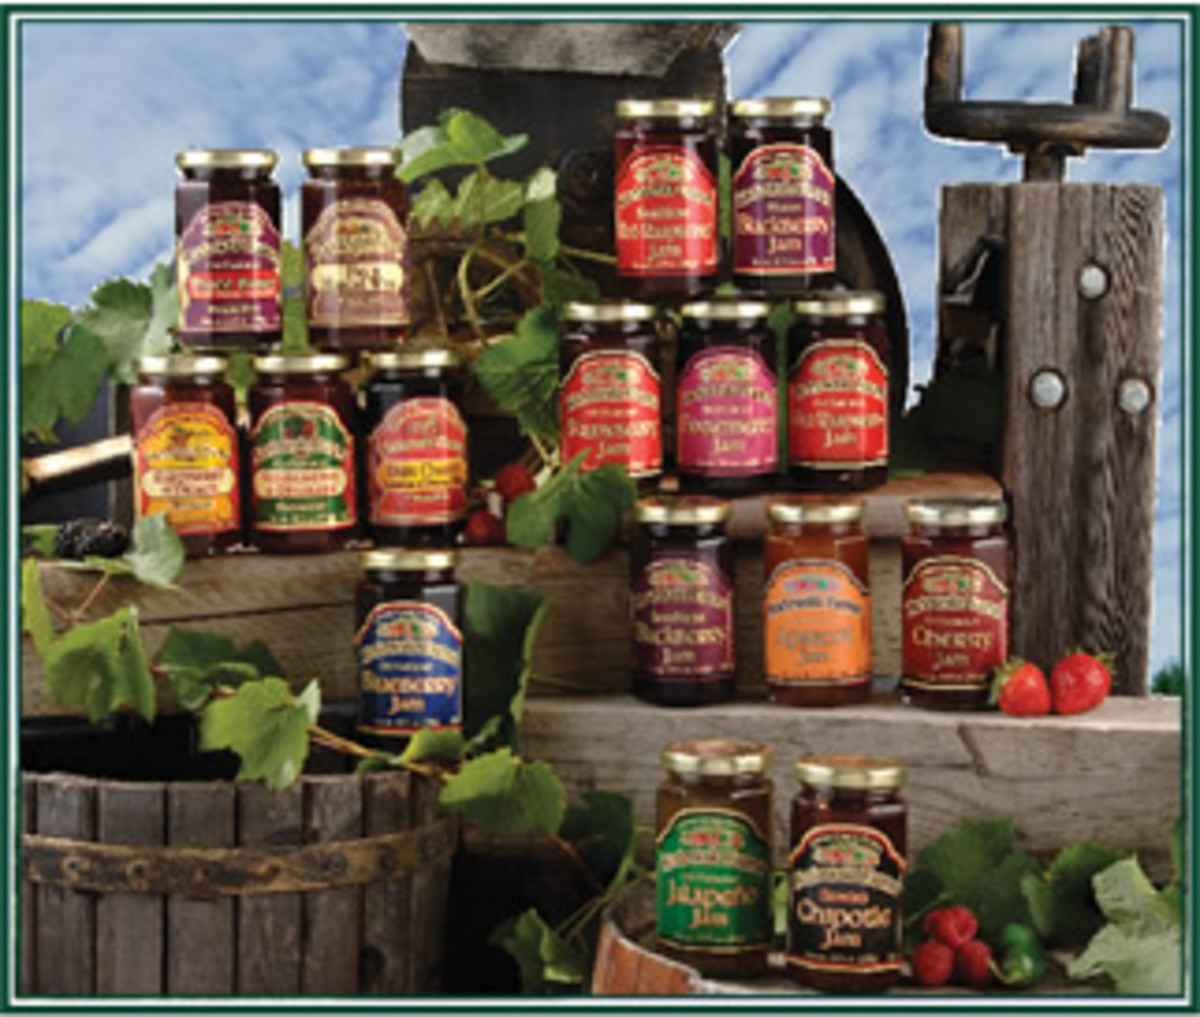 A wide variety of jams and preserves